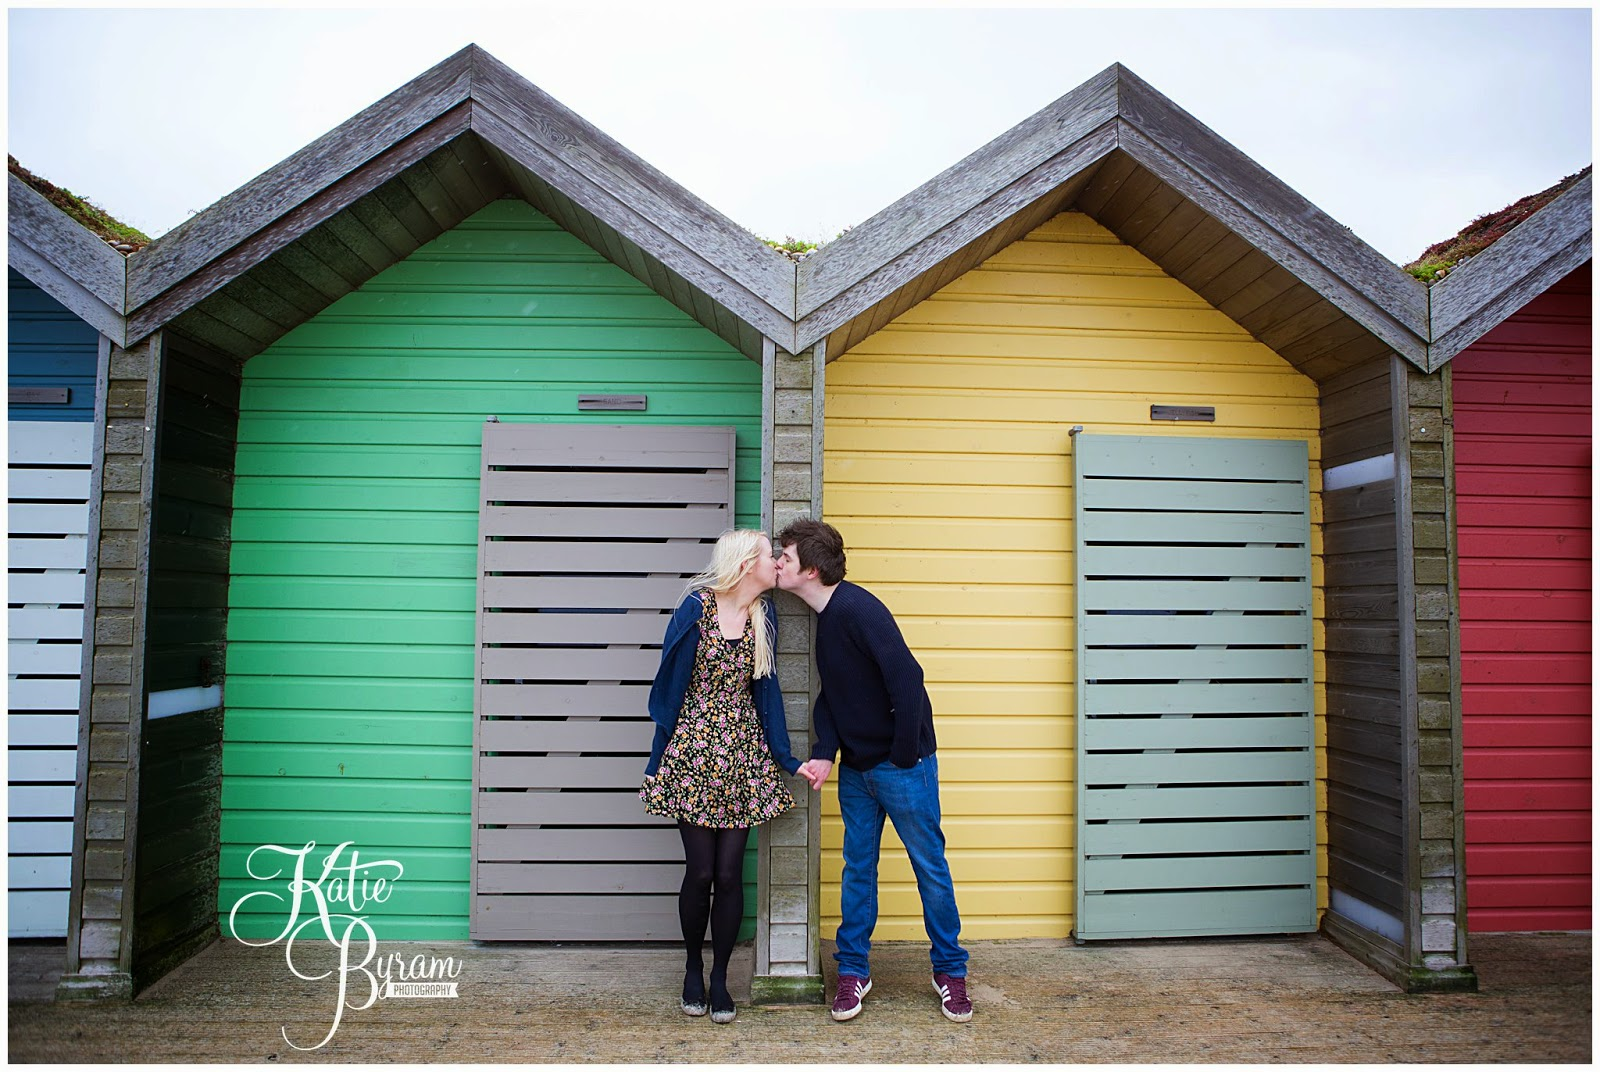 blyth pre-wedding shoot, eshott hall wedding, beach engagement shoot, northumberland wedding photographer, beach engagement, blyth beach huts, katie byram photography